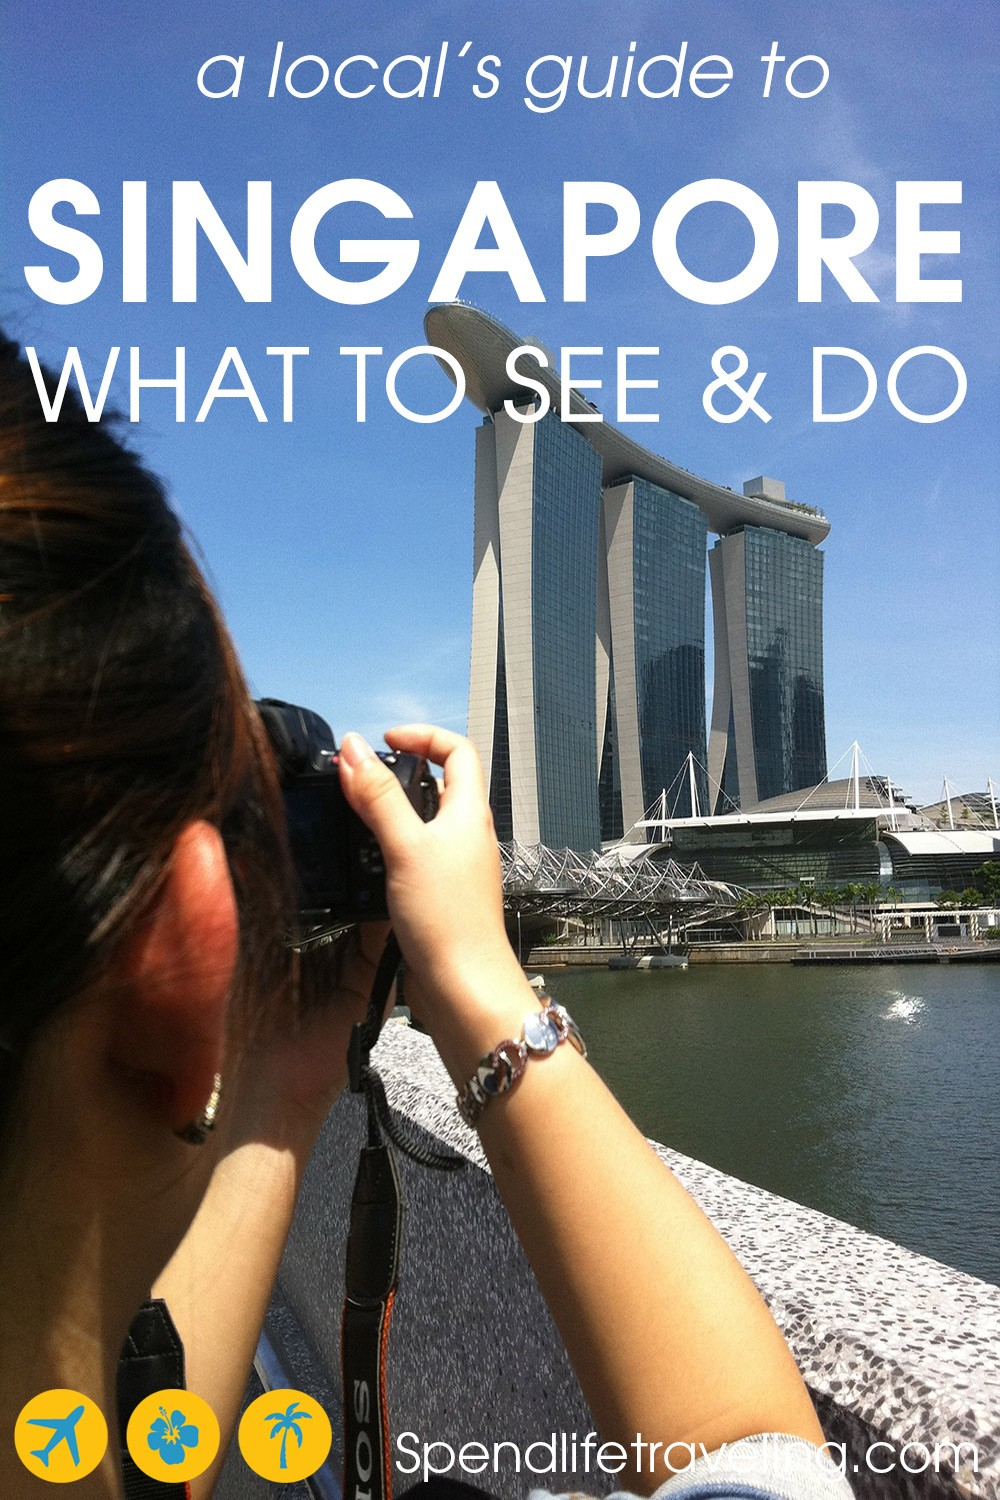 What to see, what to do & where to stay when traveling to #Singapore. Tips from a local. #visitSingapore #travellikealocal #travelAsia